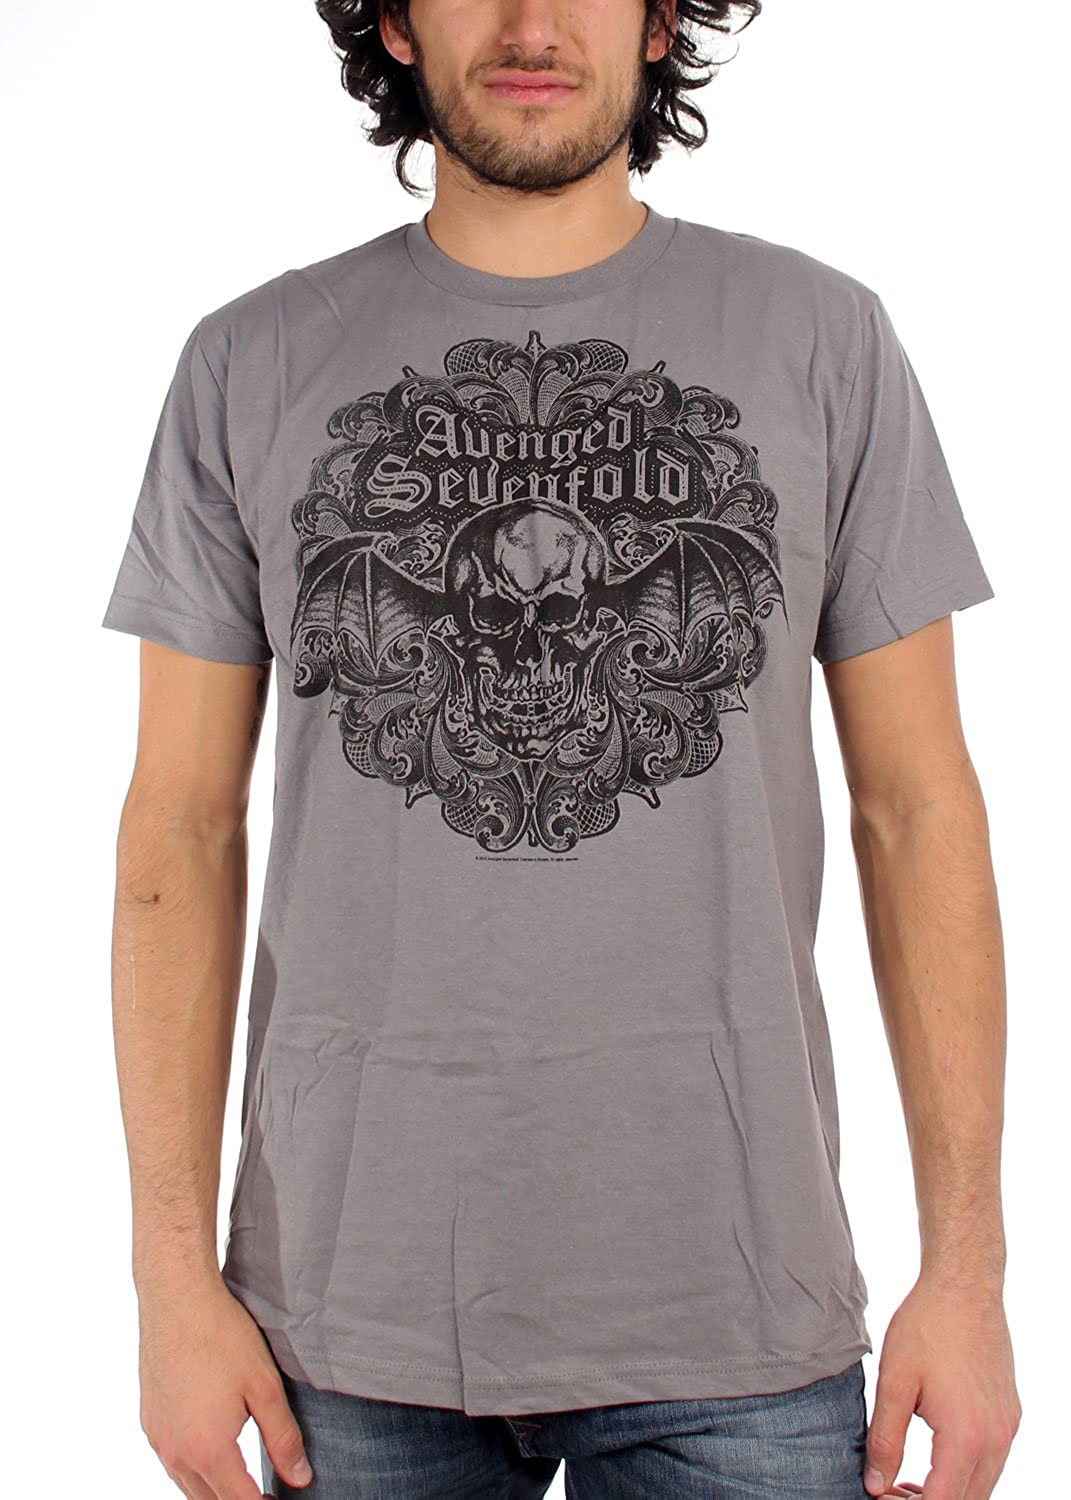 Avenged Sevenfold - Scrolled 30/1 Mens T-Shirt In Heather Gray